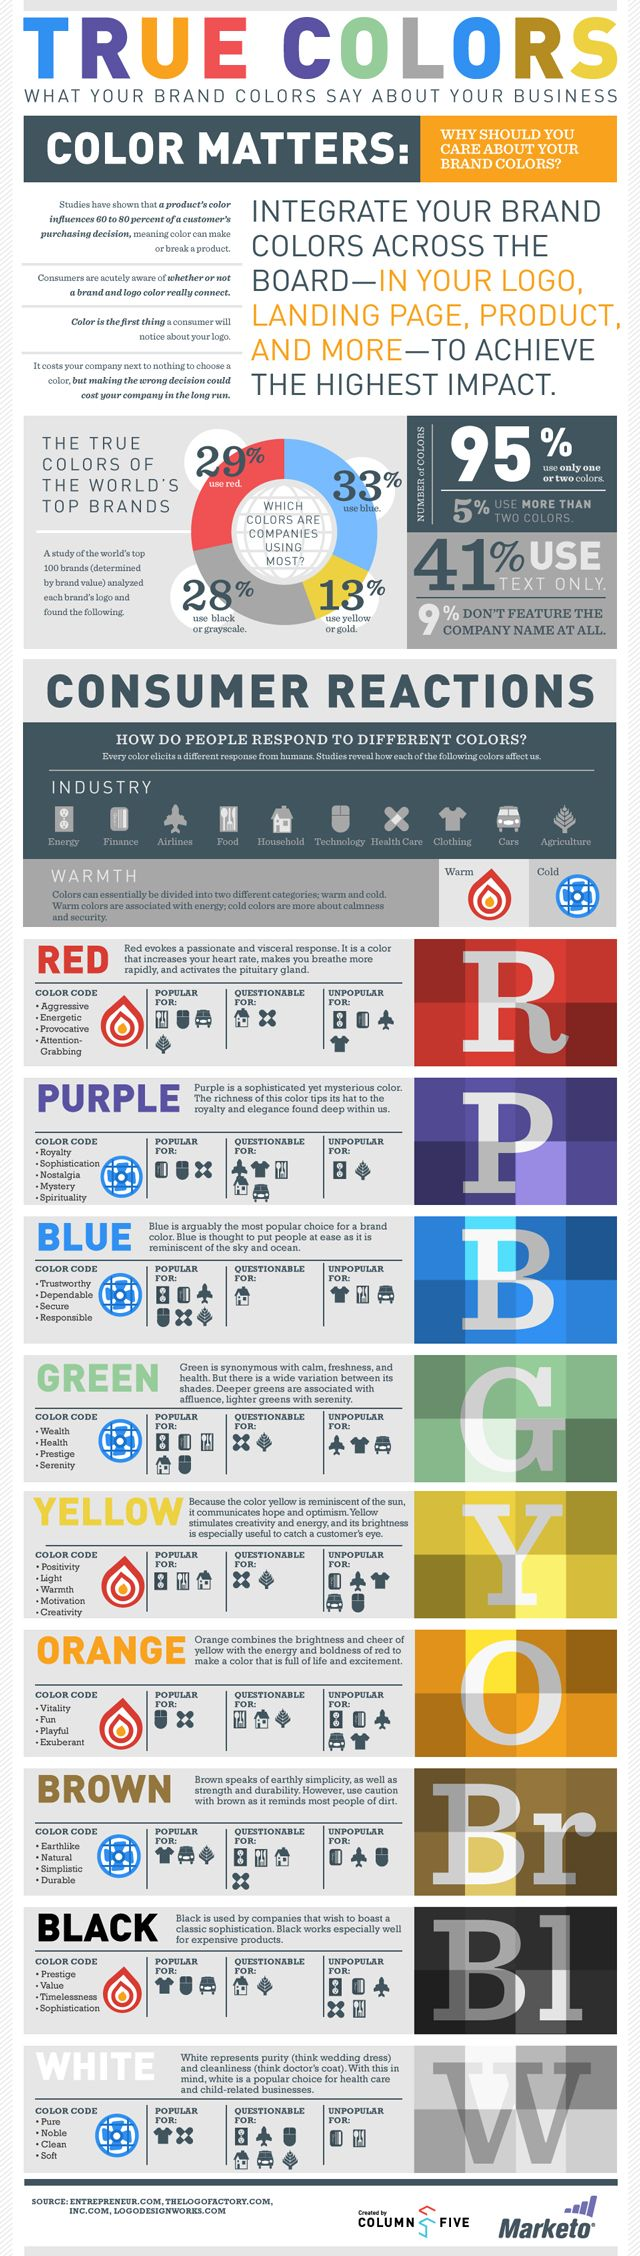 'True Colors - What Your Brand Colors Say About Your Business' by Column Five - Advertising, Design Agency, Art Direction from United States...